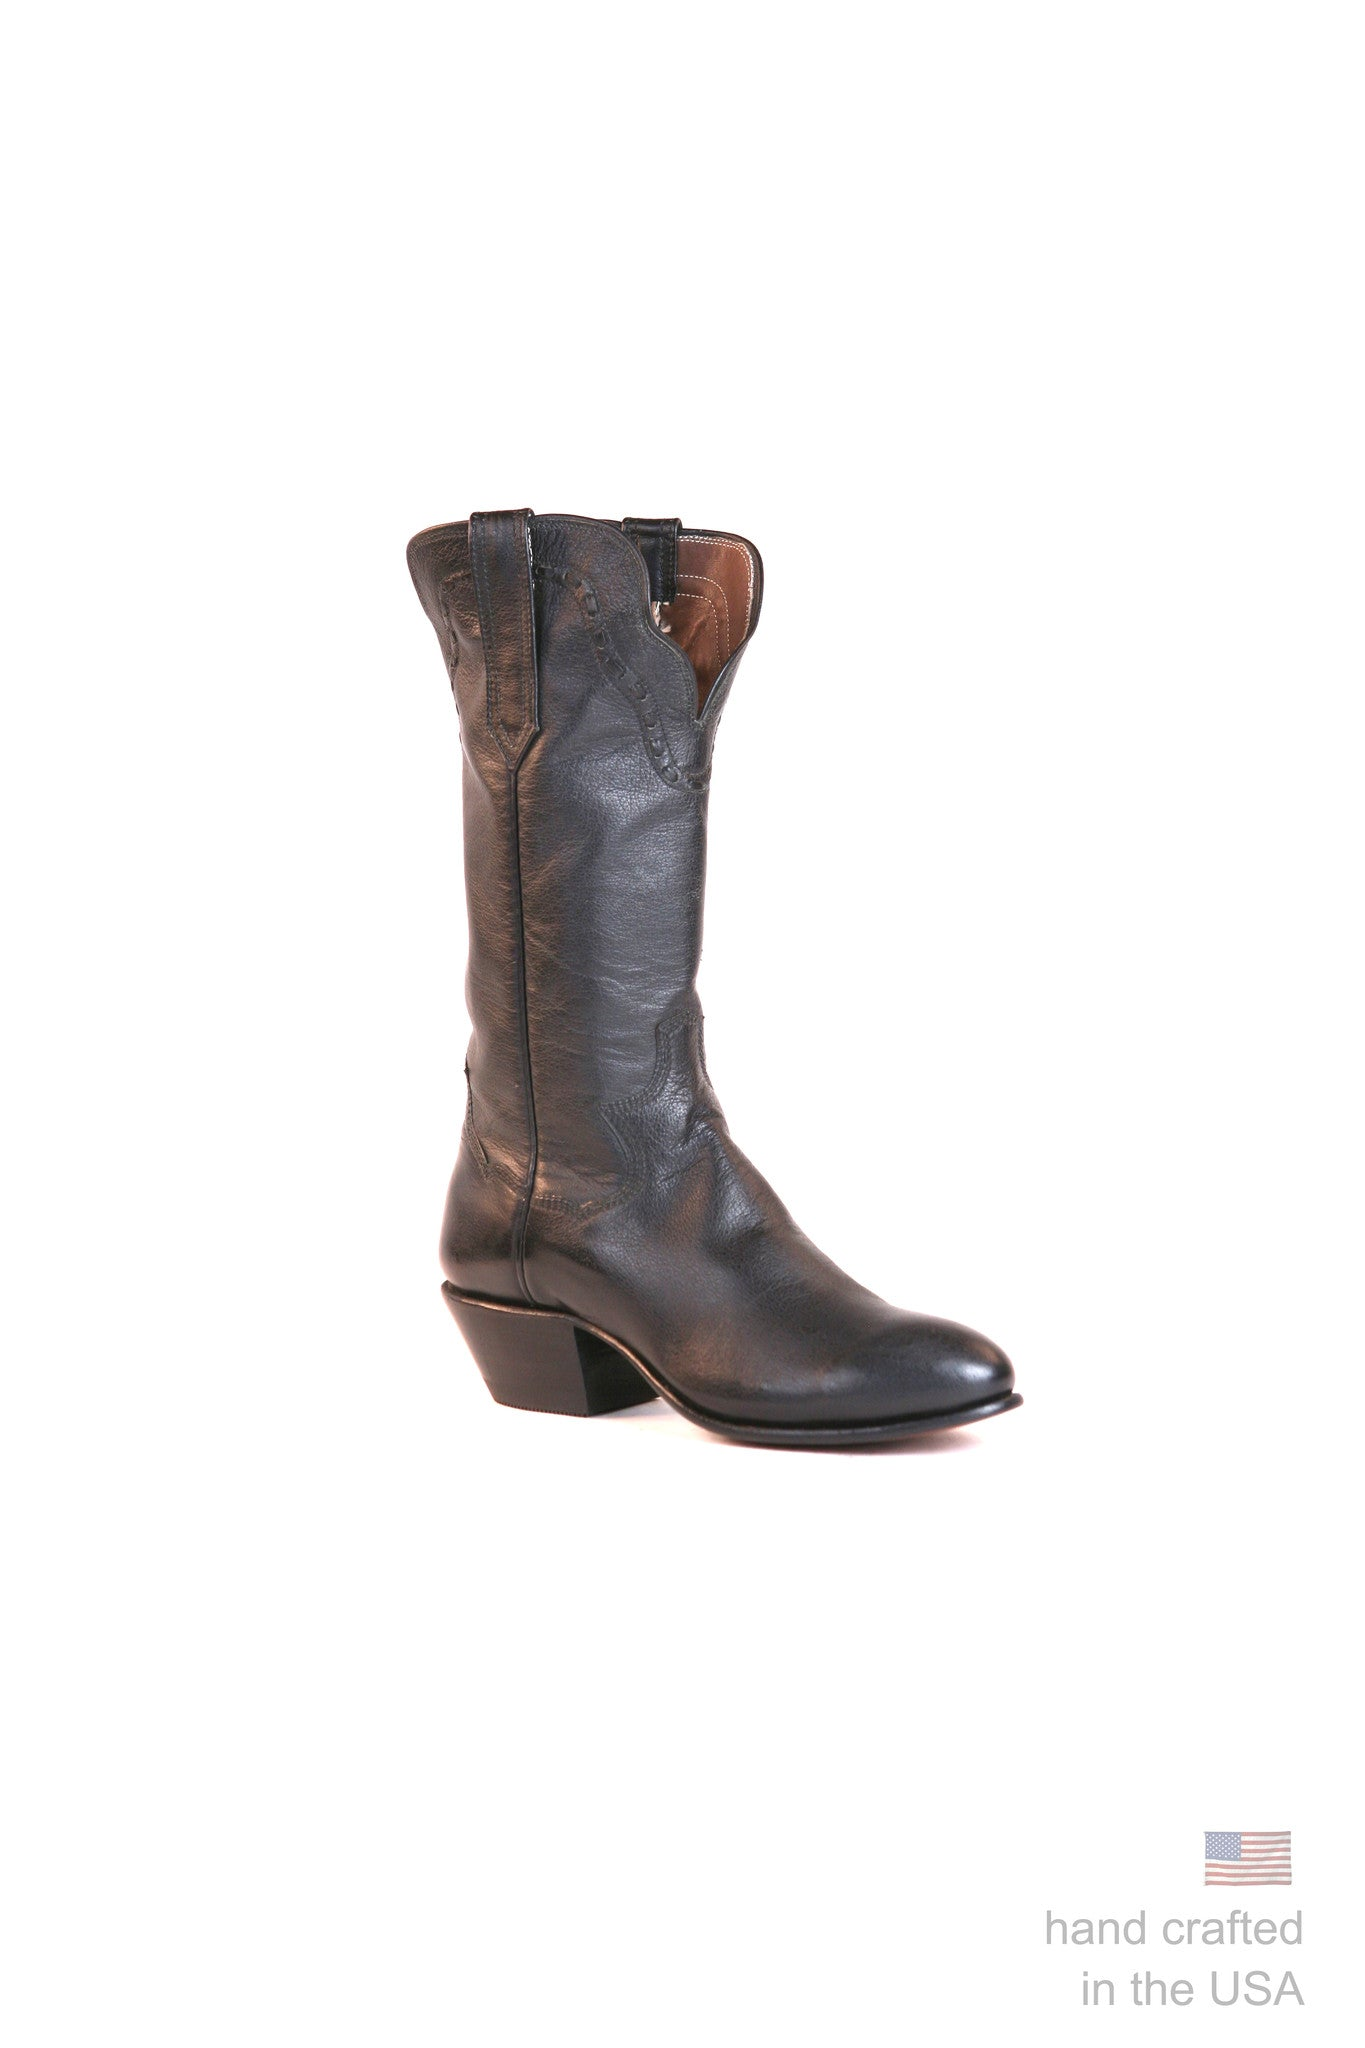 Singles: Boot 0050: Size 5.5 B